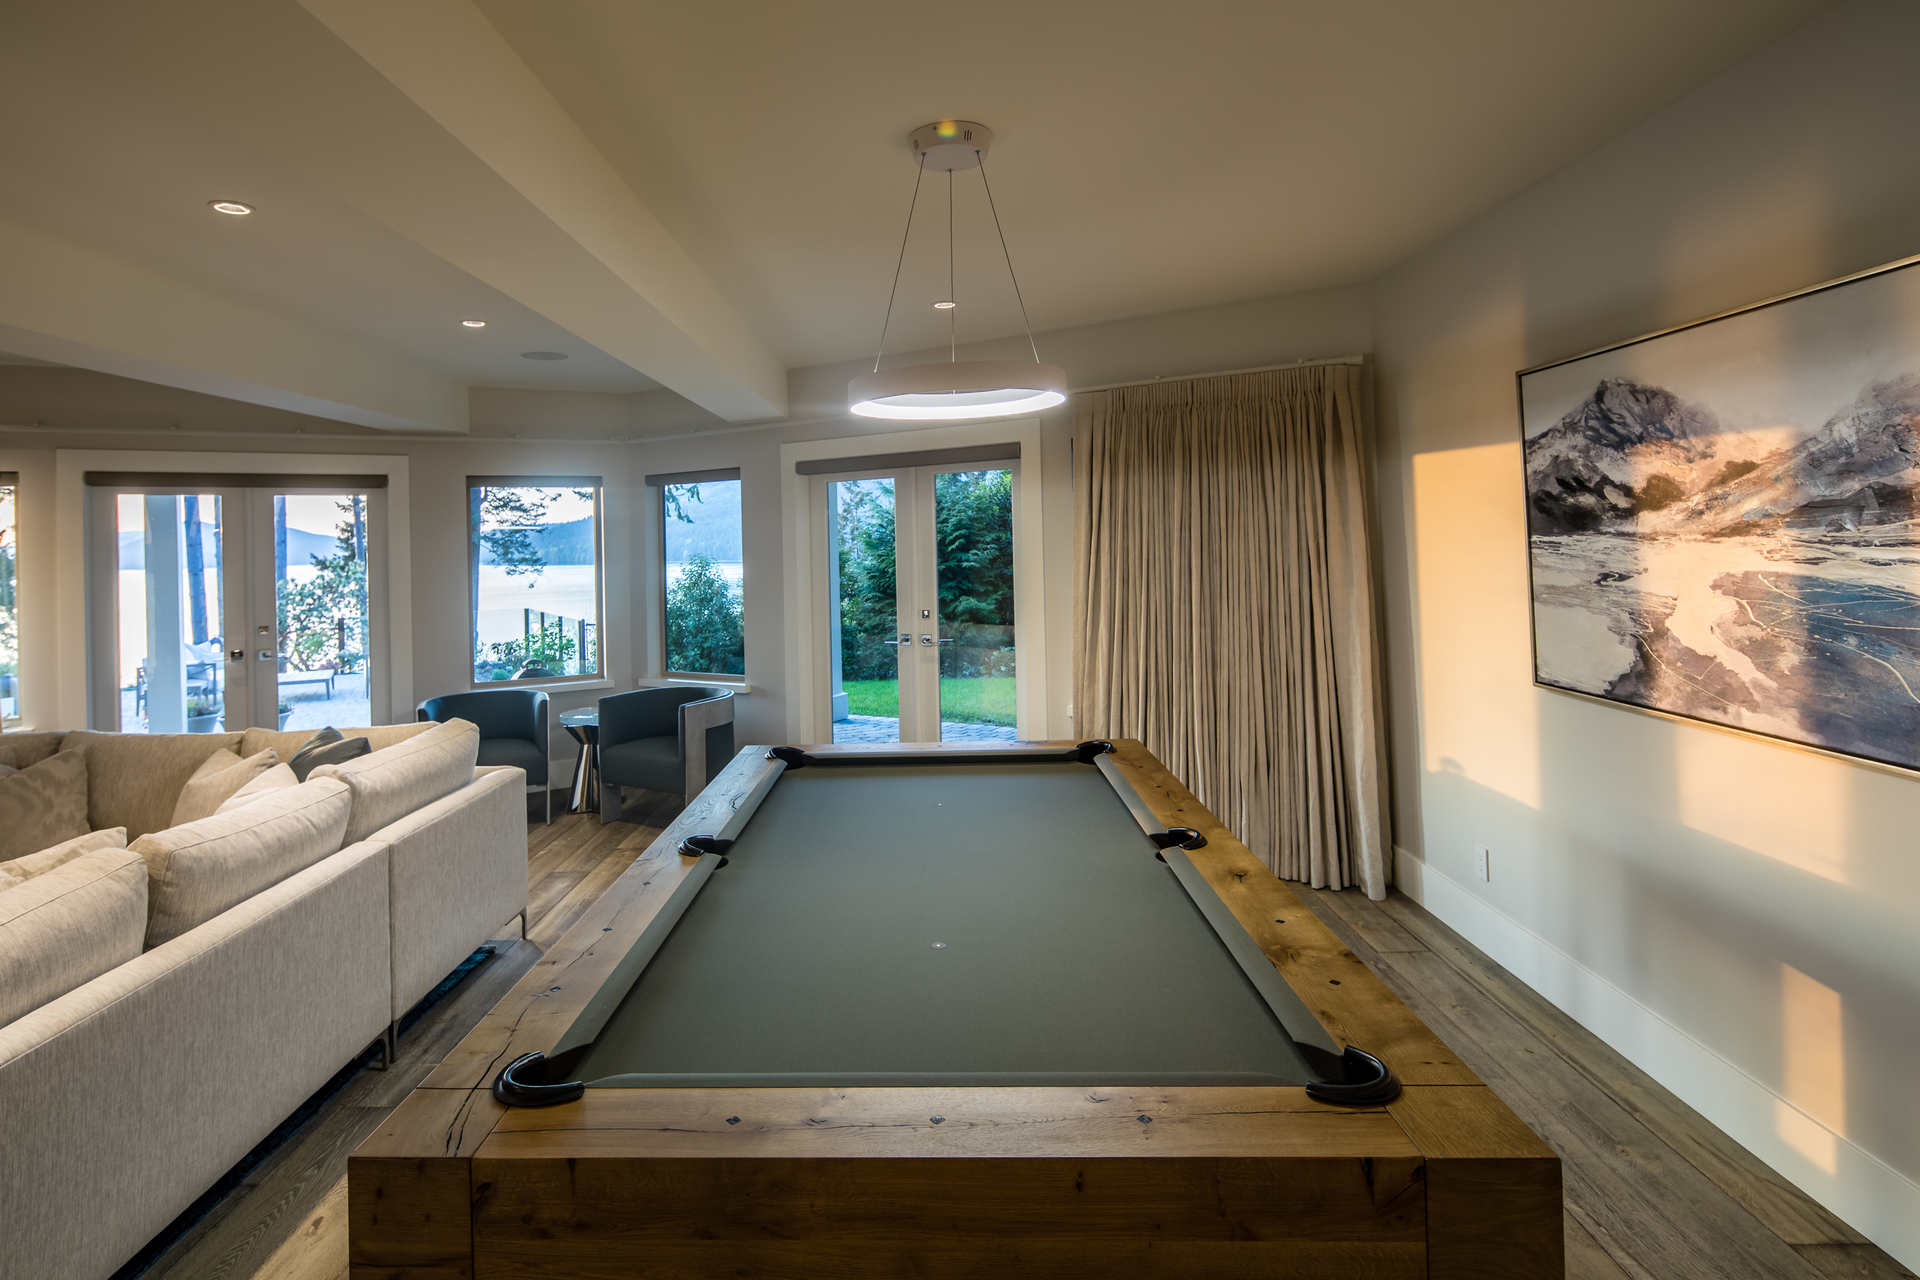 Basement Living Room With Patio Walkout at 518 North Lands End Road, Saanich Saanich, Vancouver Island